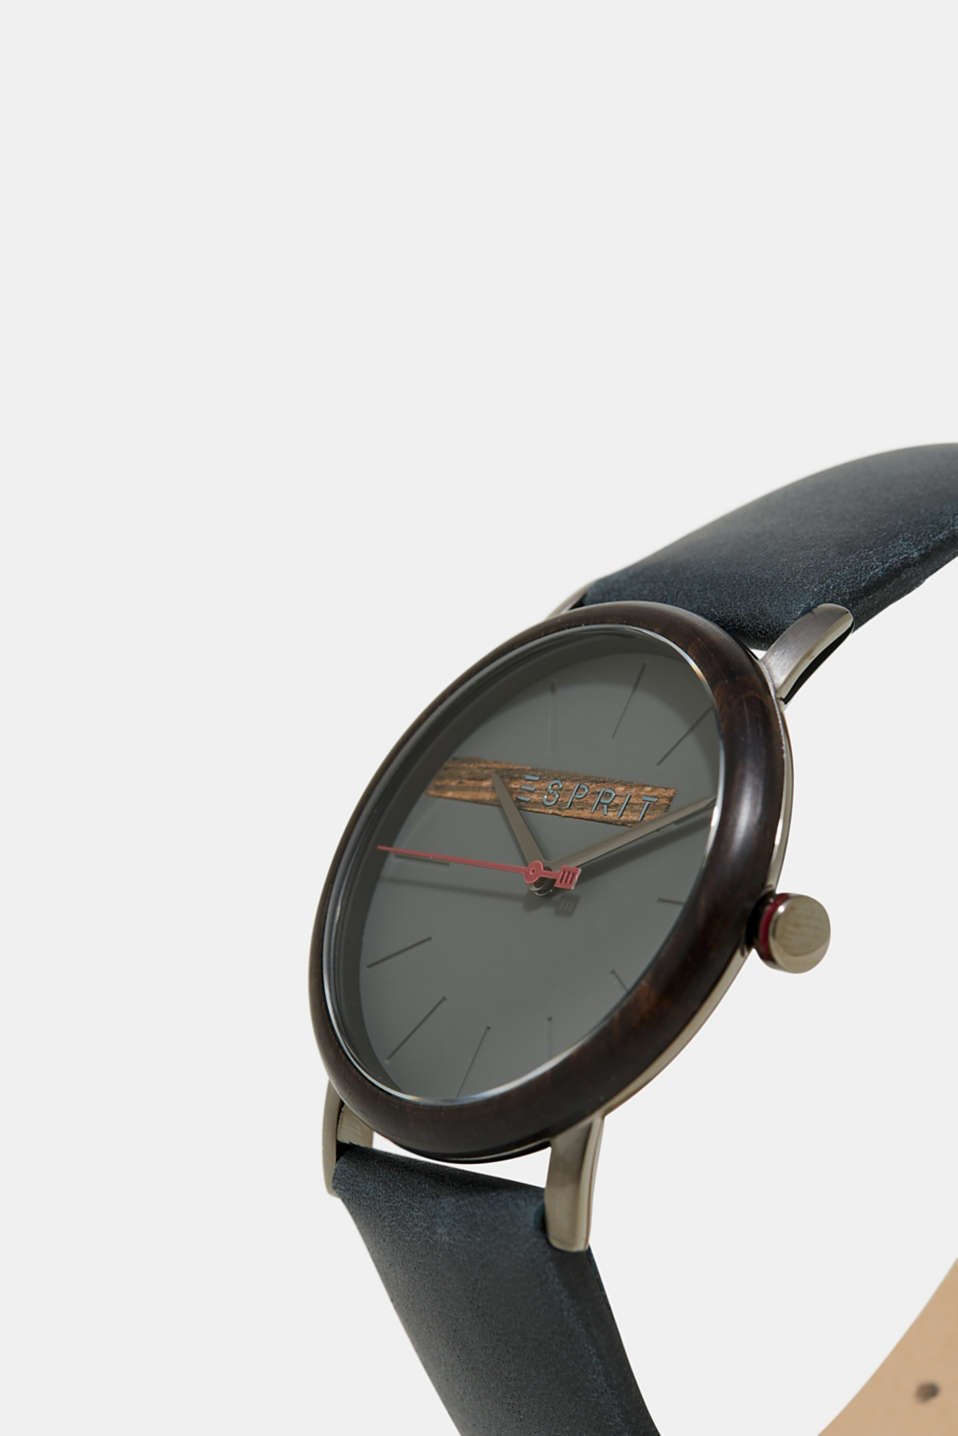 Mens watch with a wooden bezel